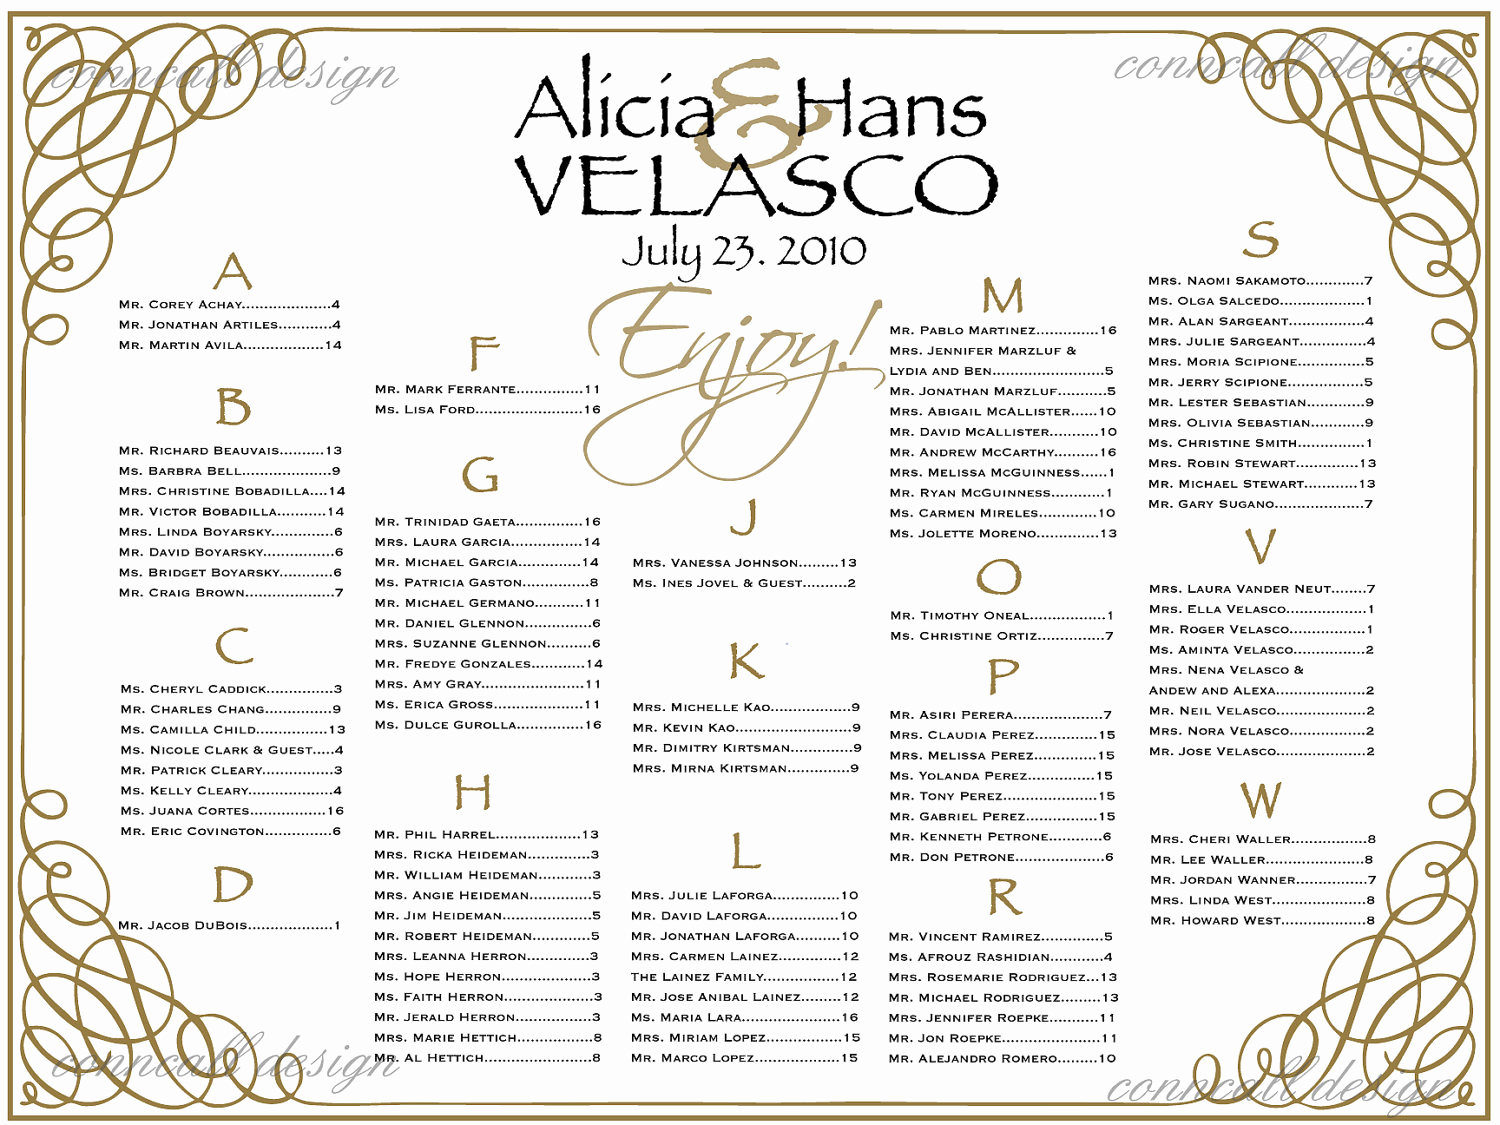 Wedding Seating Chart Poster Elegant Seating Chart Templates for Wedding Reception